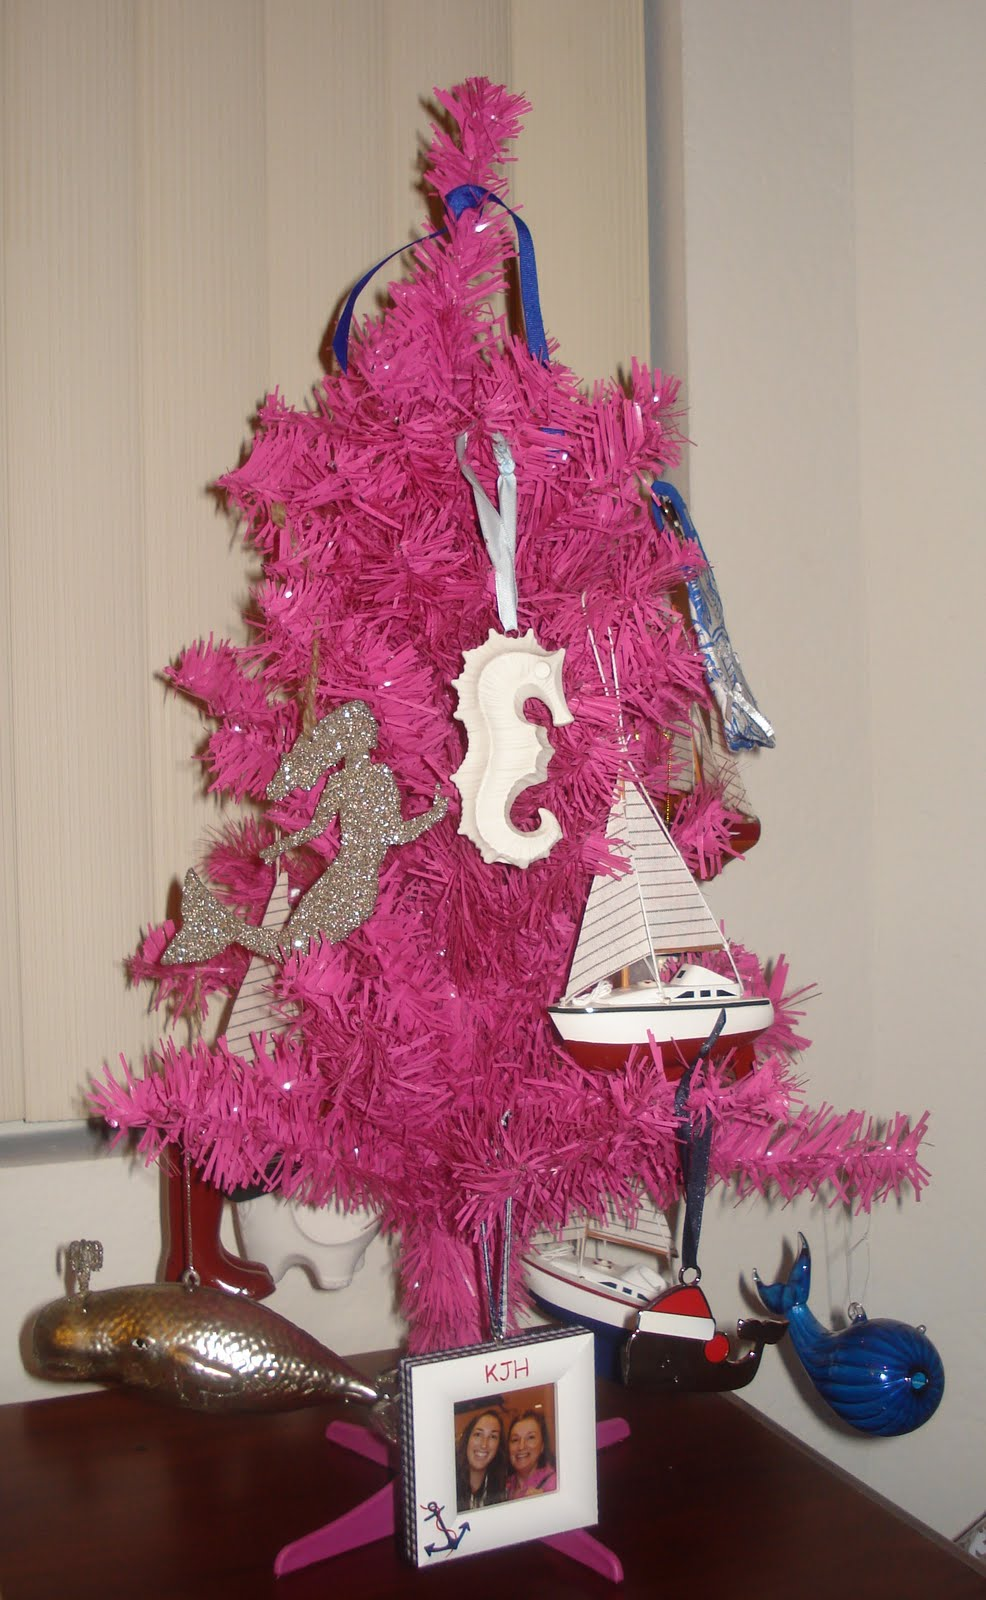 Nautical tree ornaments - The Pink Preppy Tree Is Decorated With Nautical Theme Ornaments And Kate Said That Next Year She Ll Need A Larger Tree Since Her Ornament Collection Has